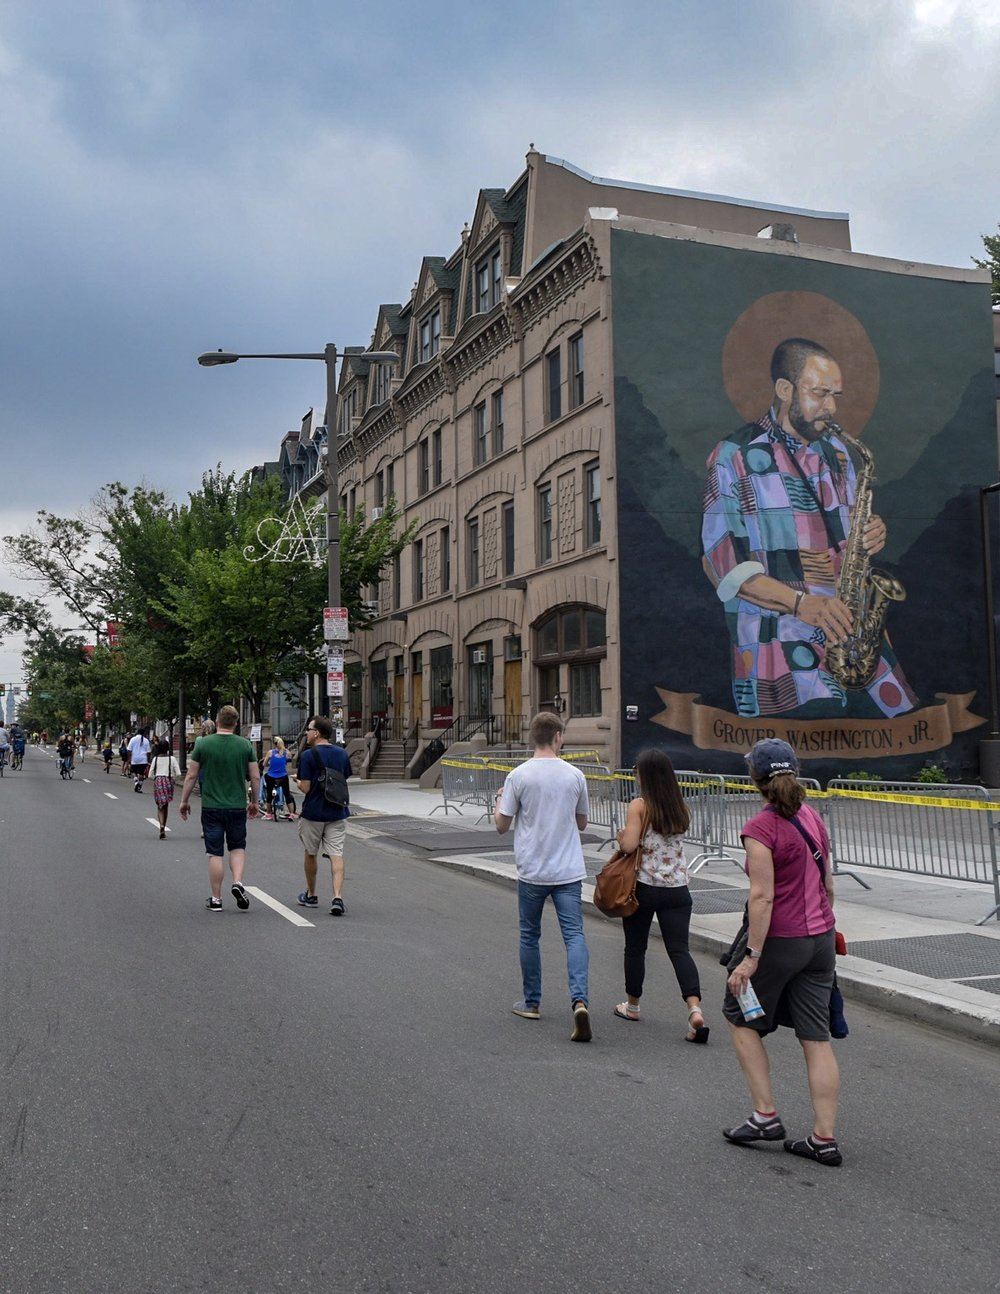 Grover Washington Jr. mural, North Broad